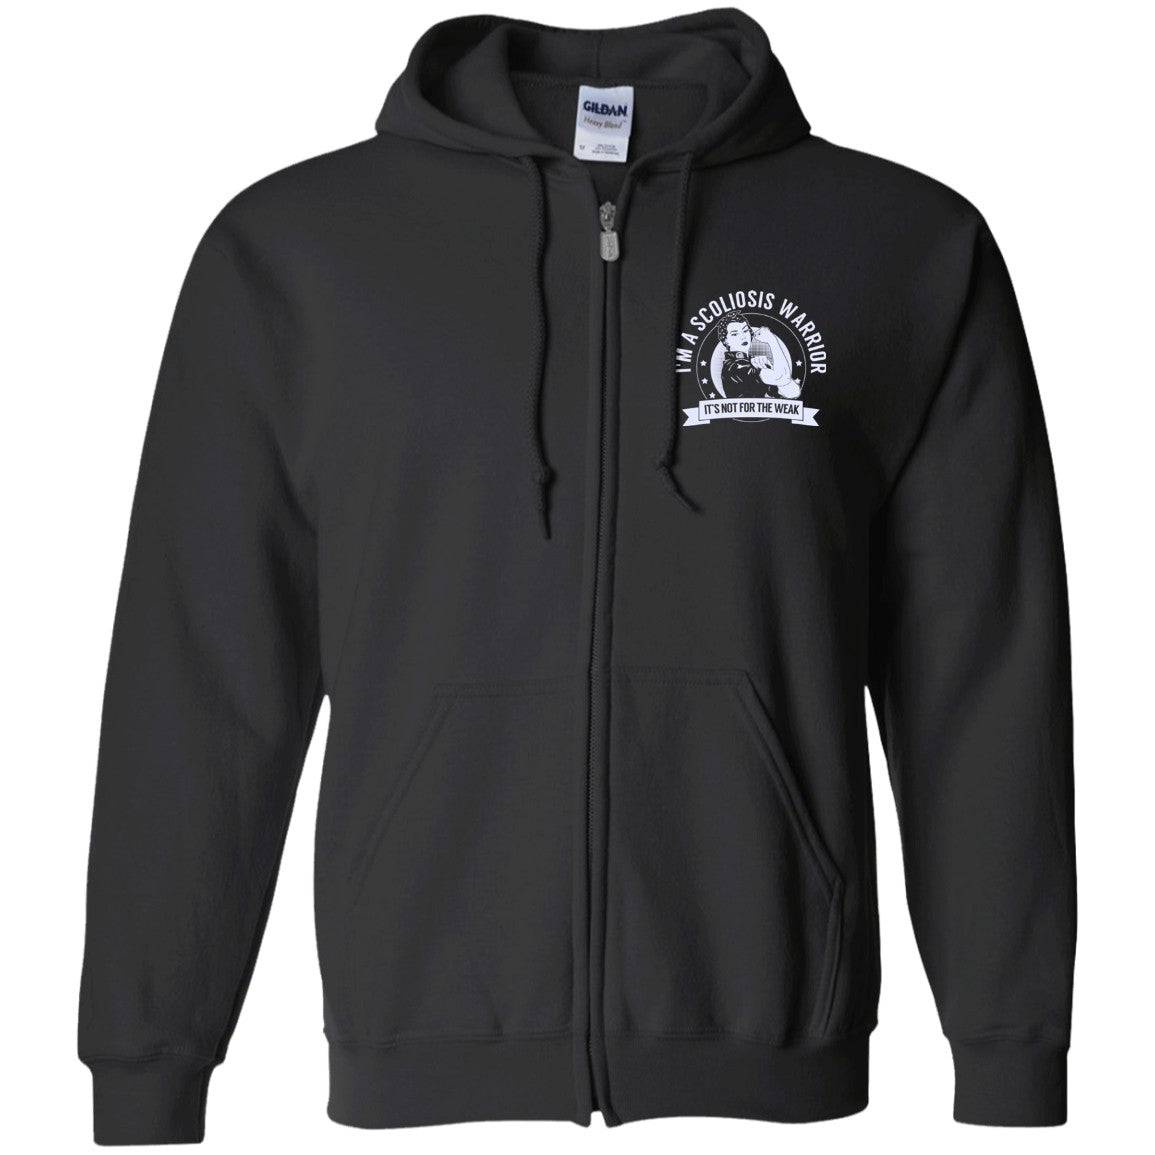 Scoliosis Warrior NFTW Zip Up Hooded Sweatshirt - The Unchargeables